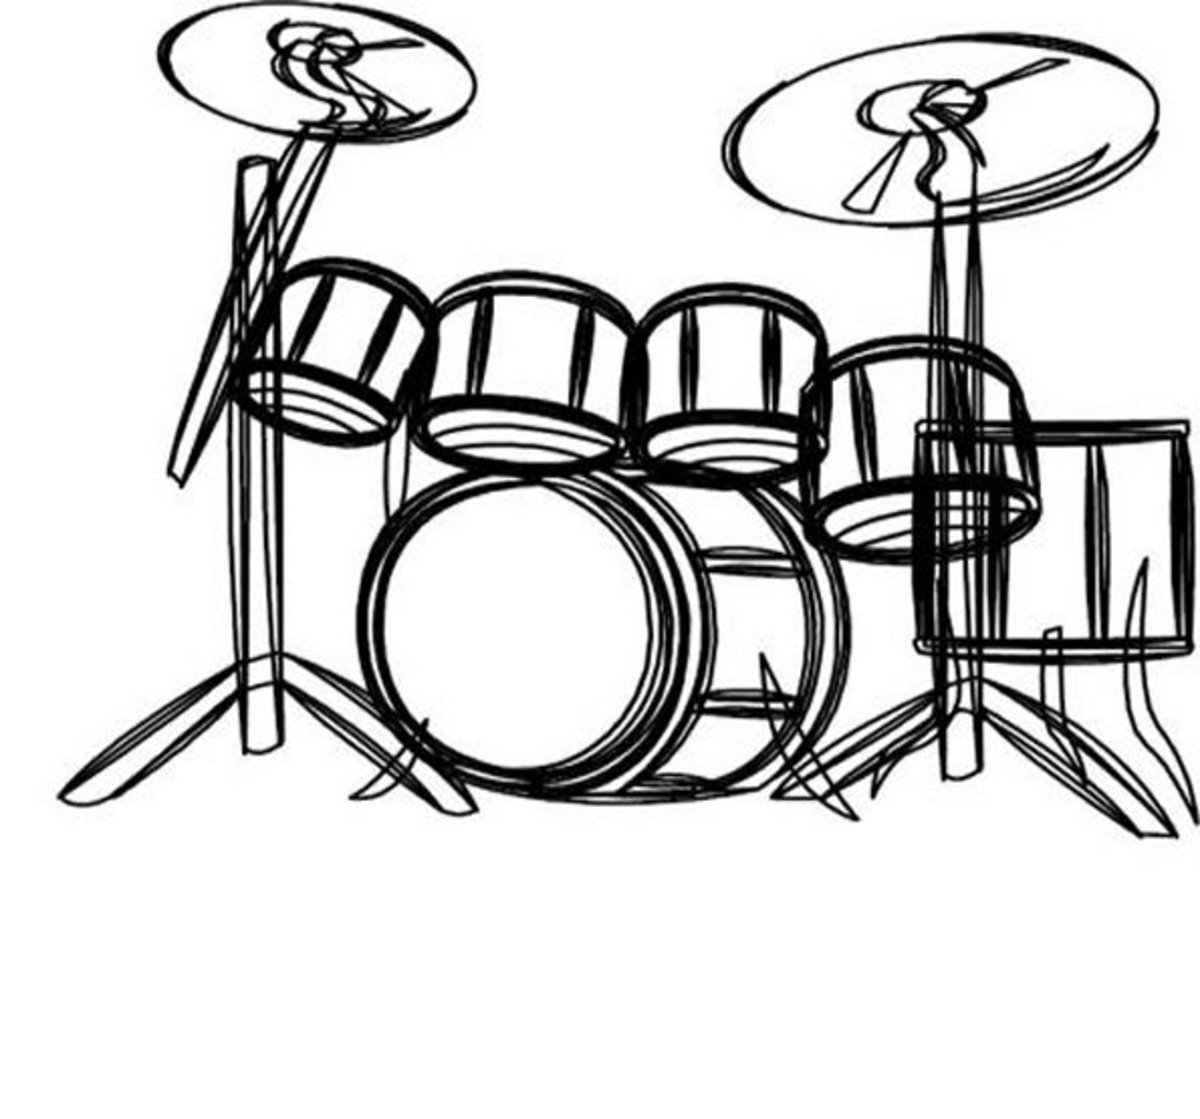 Musical Instruments Kids Coloring Pages and Free Colouring Pictures to Print - Drum Set